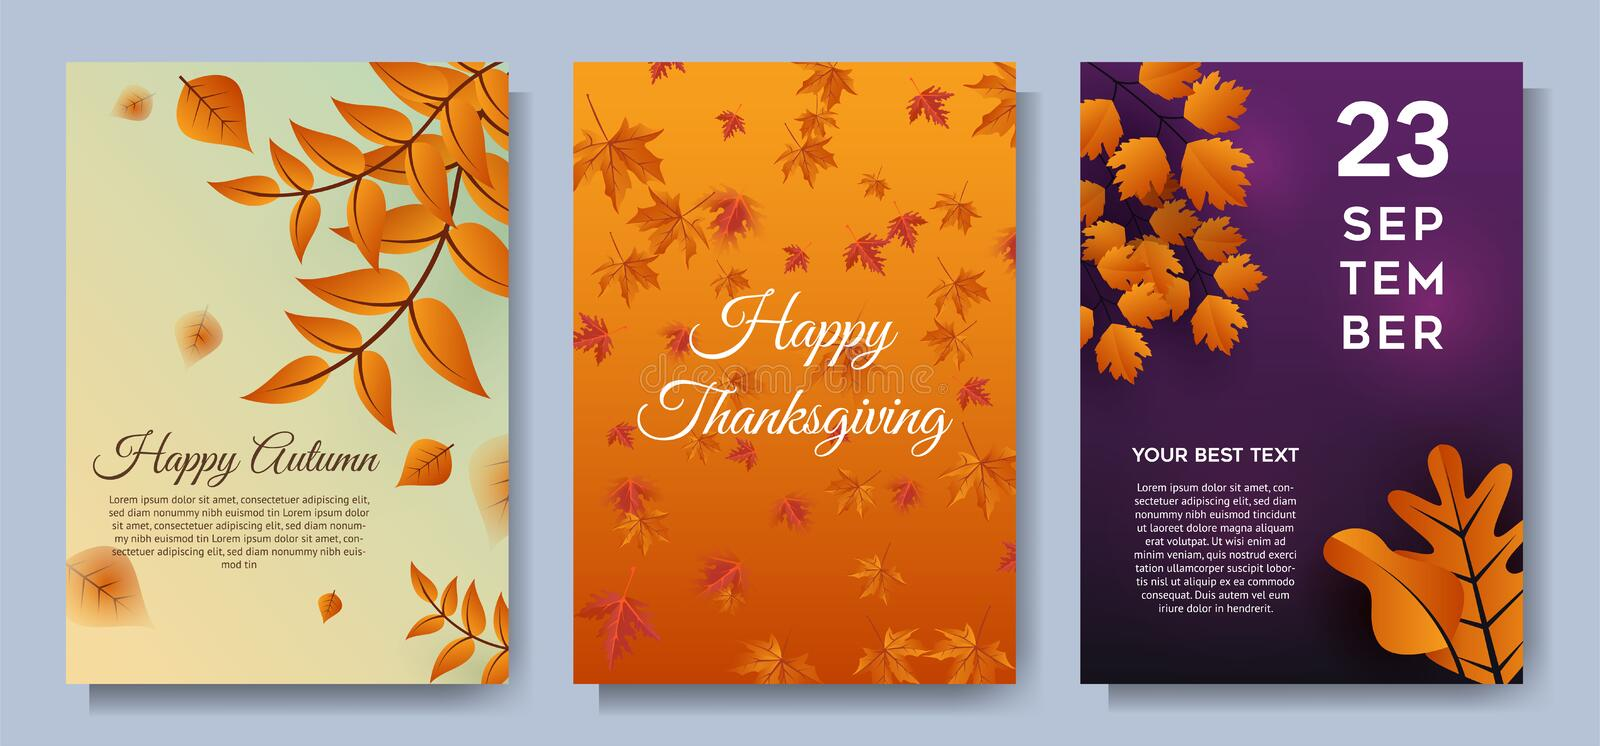 Autumn special offer leaves sale banners or party invitation background vector illustration